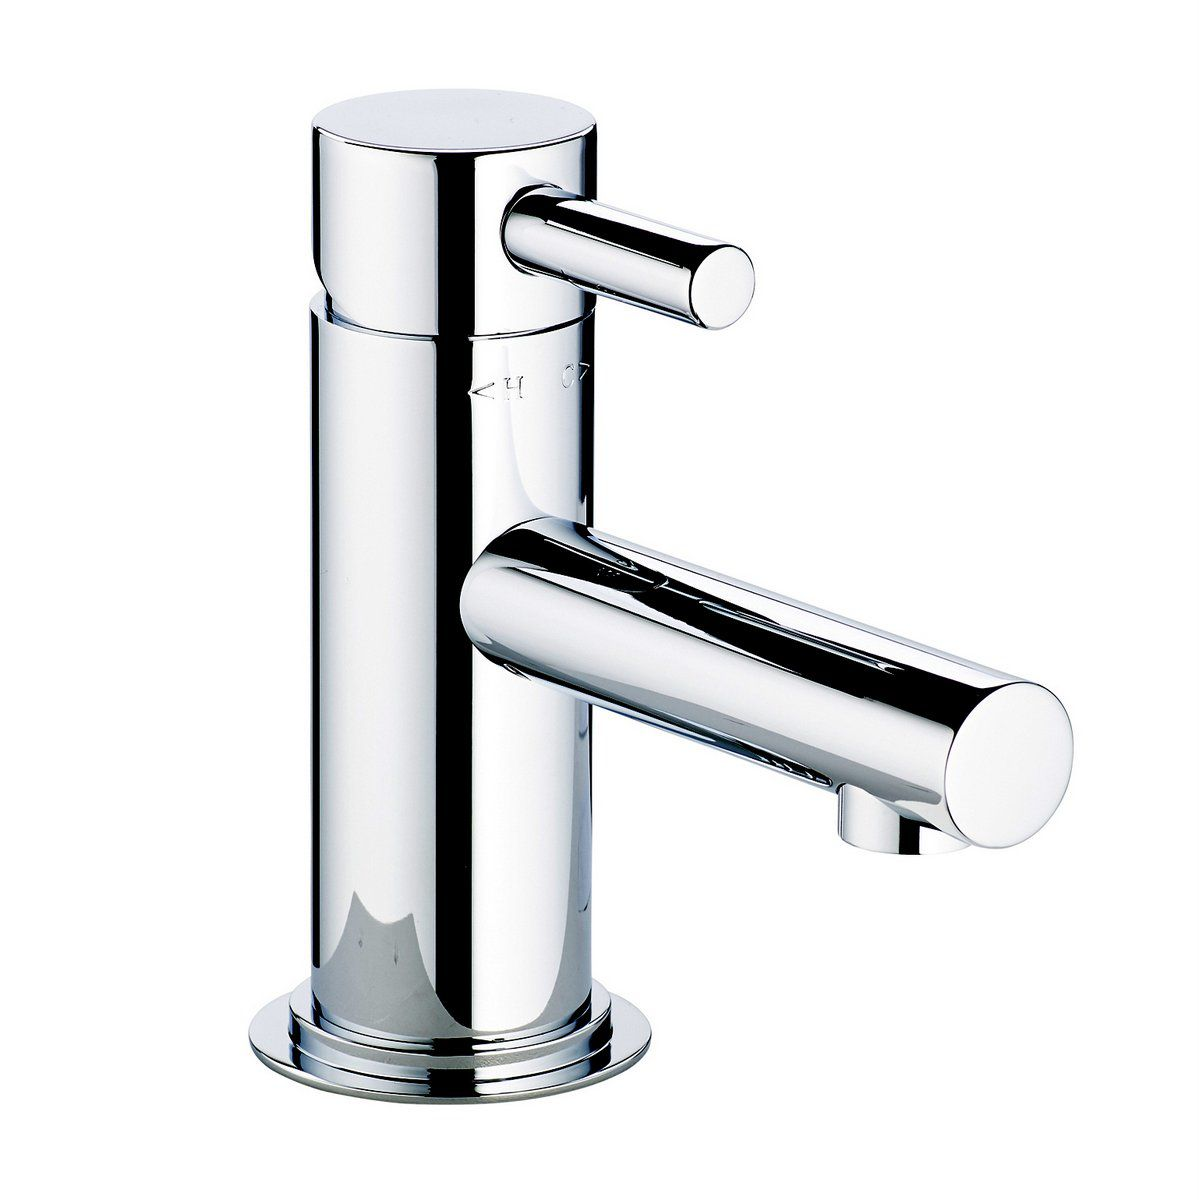 Swadling Absolute Monobloc Basin Mixer